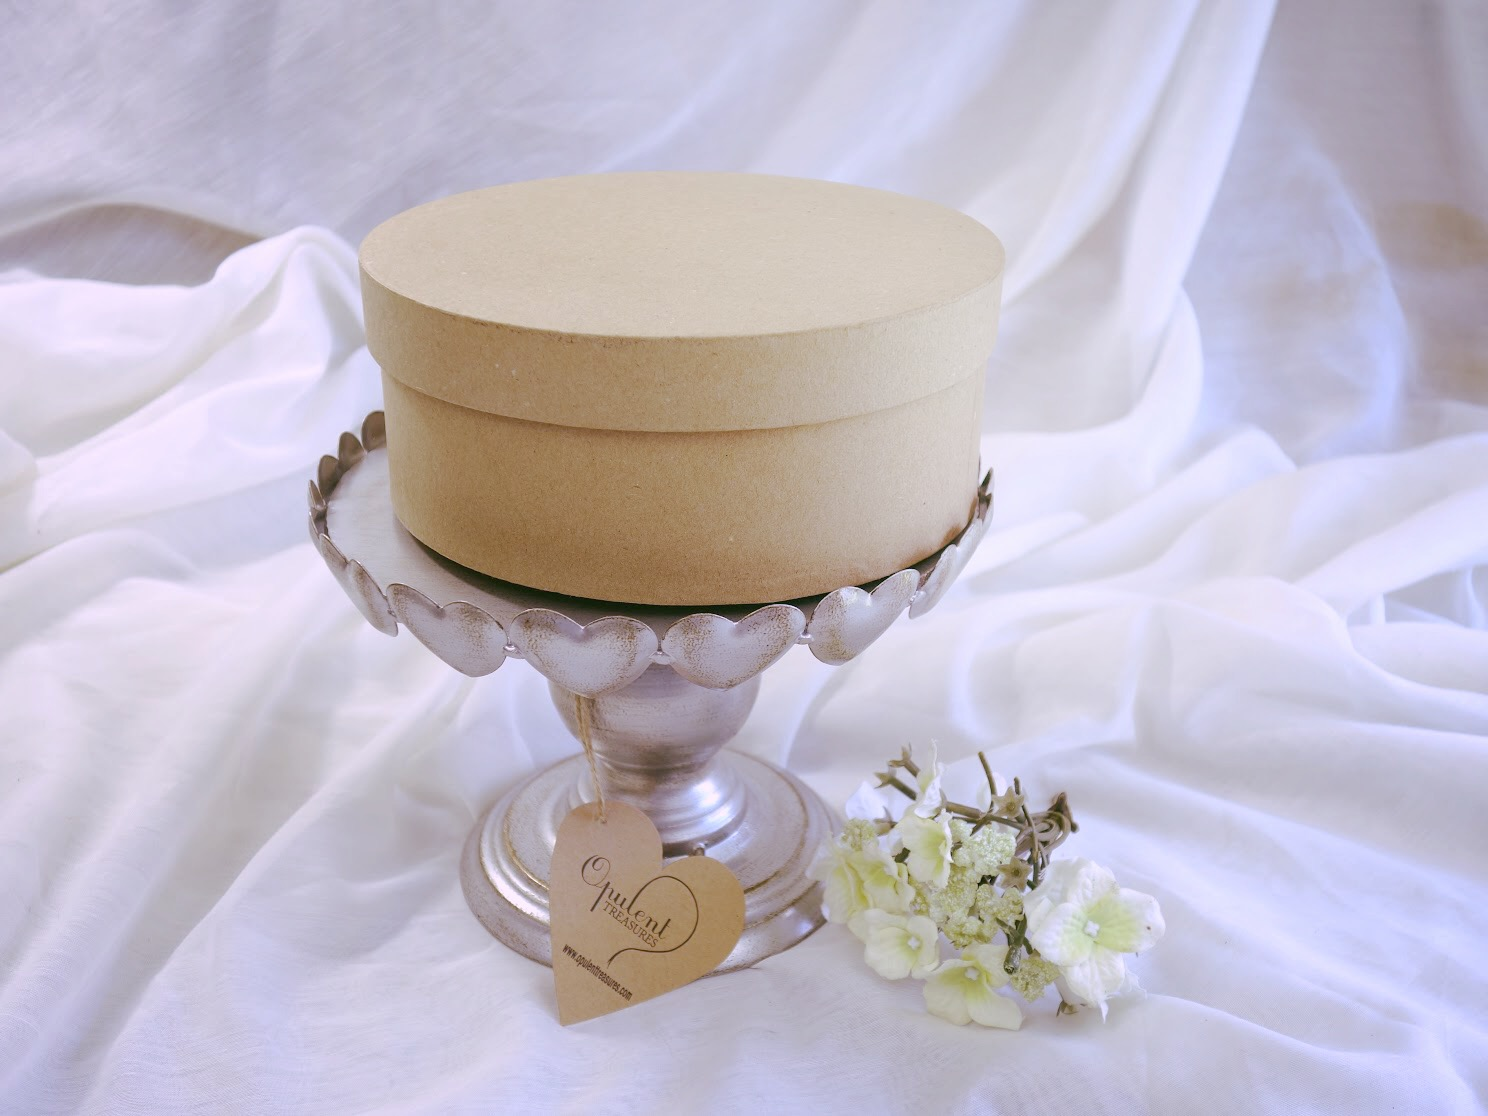 hat box and cake stand